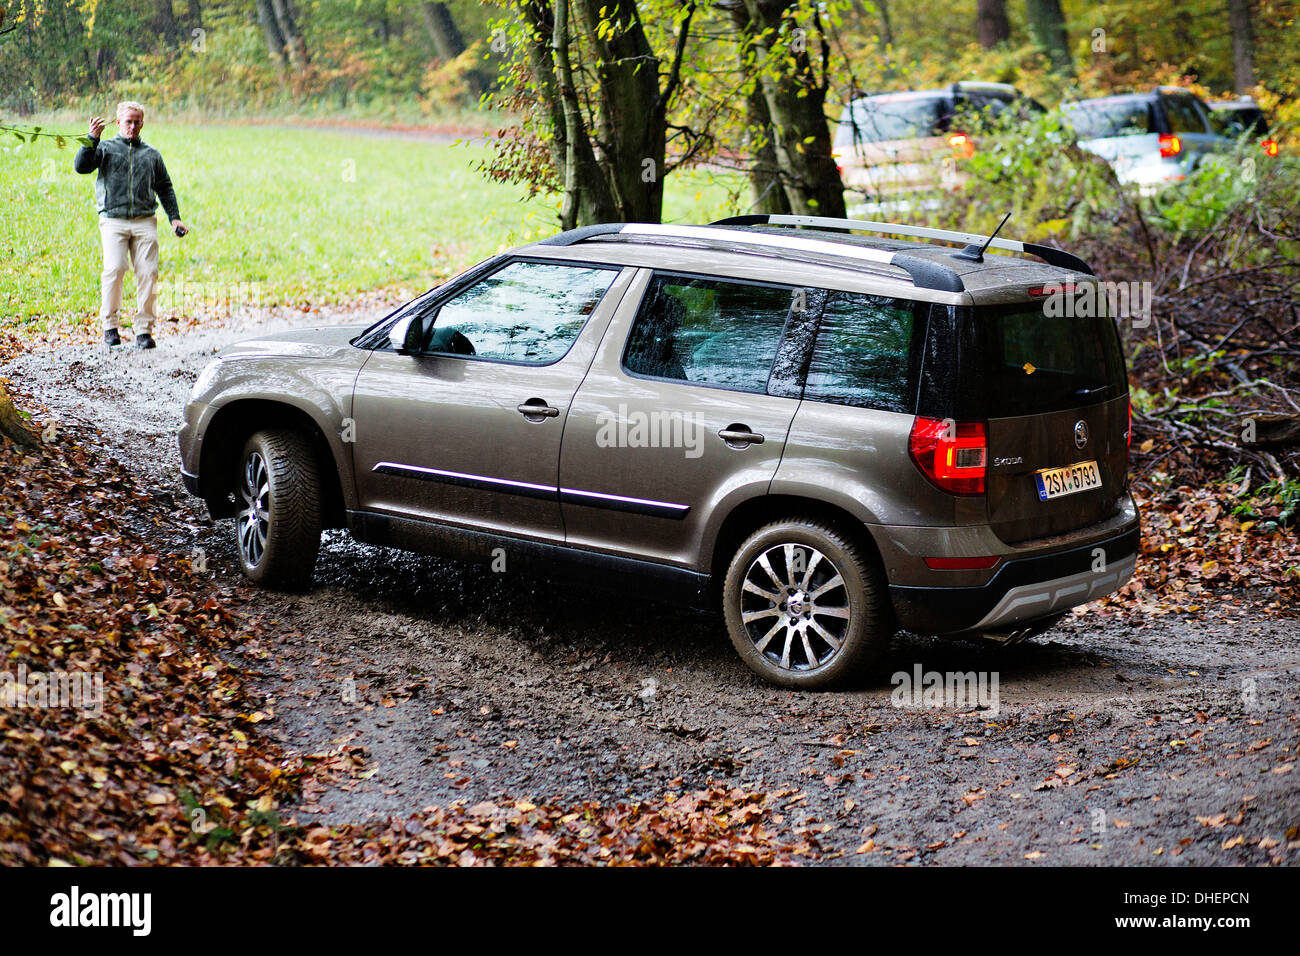 skoda yeti outdoor suv modernised stock photo royalty. Black Bedroom Furniture Sets. Home Design Ideas